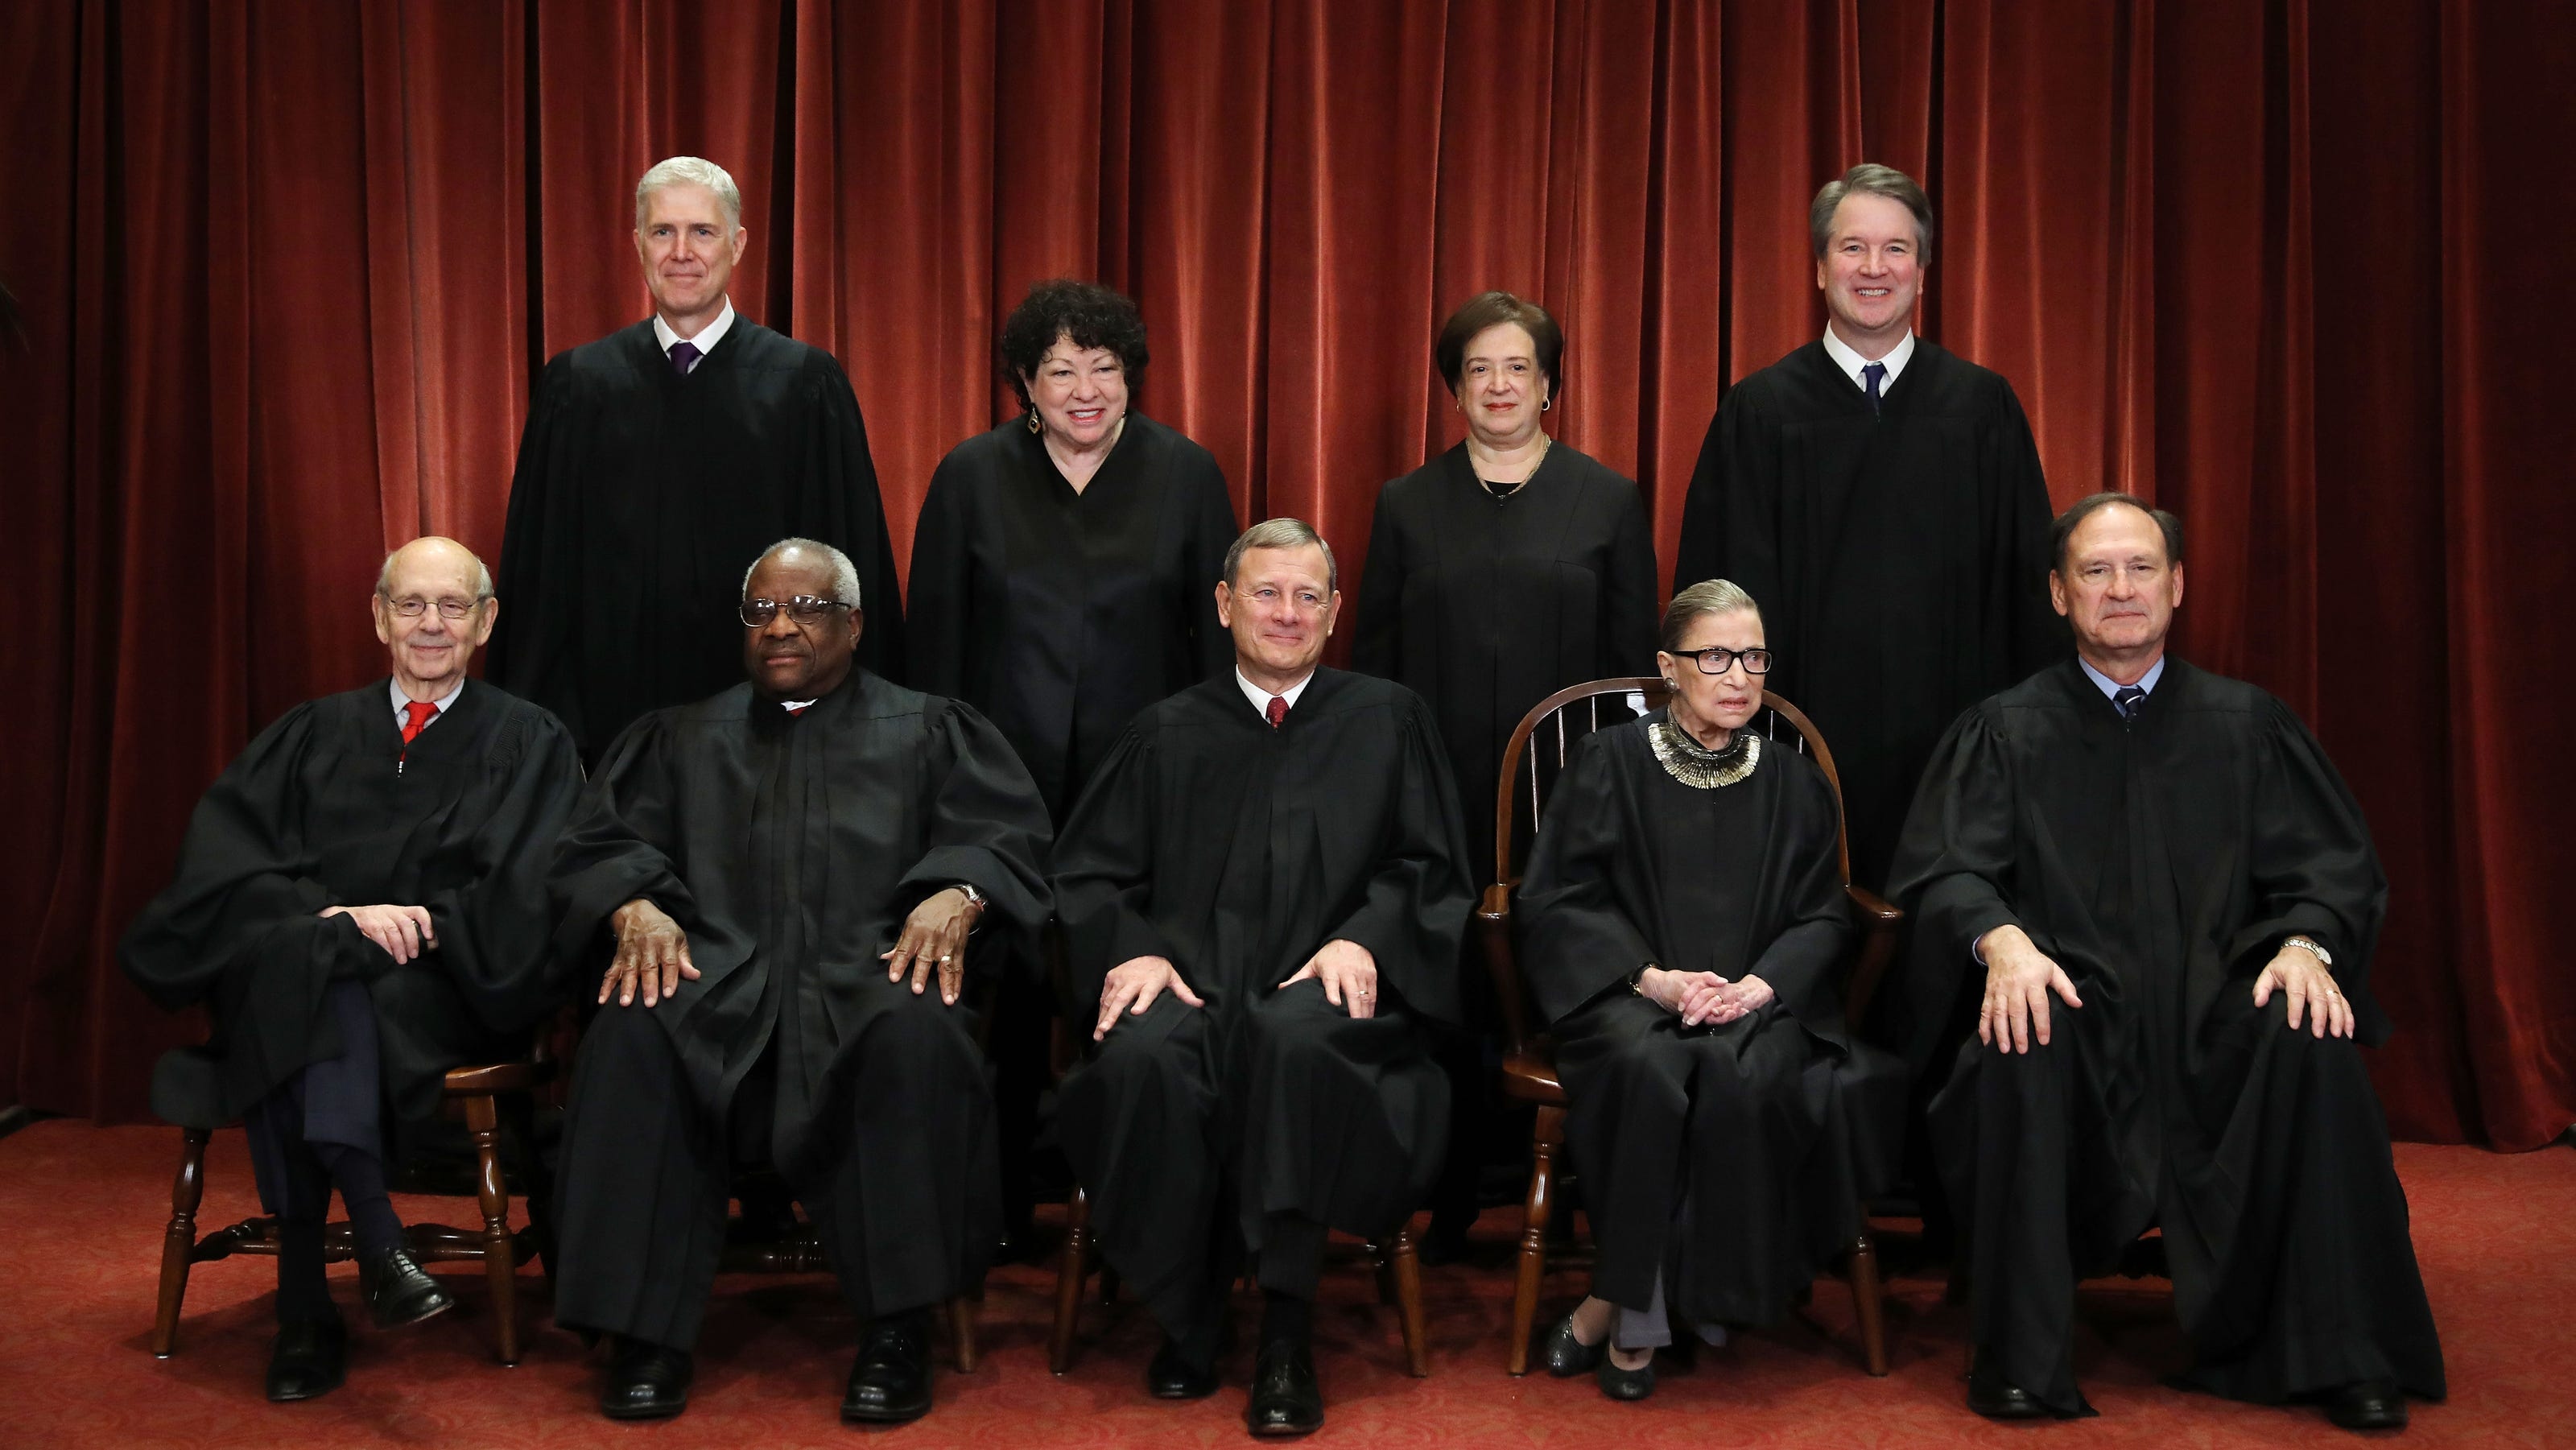 What if there's a tie? How the Supreme Court works when there are only 8 justices